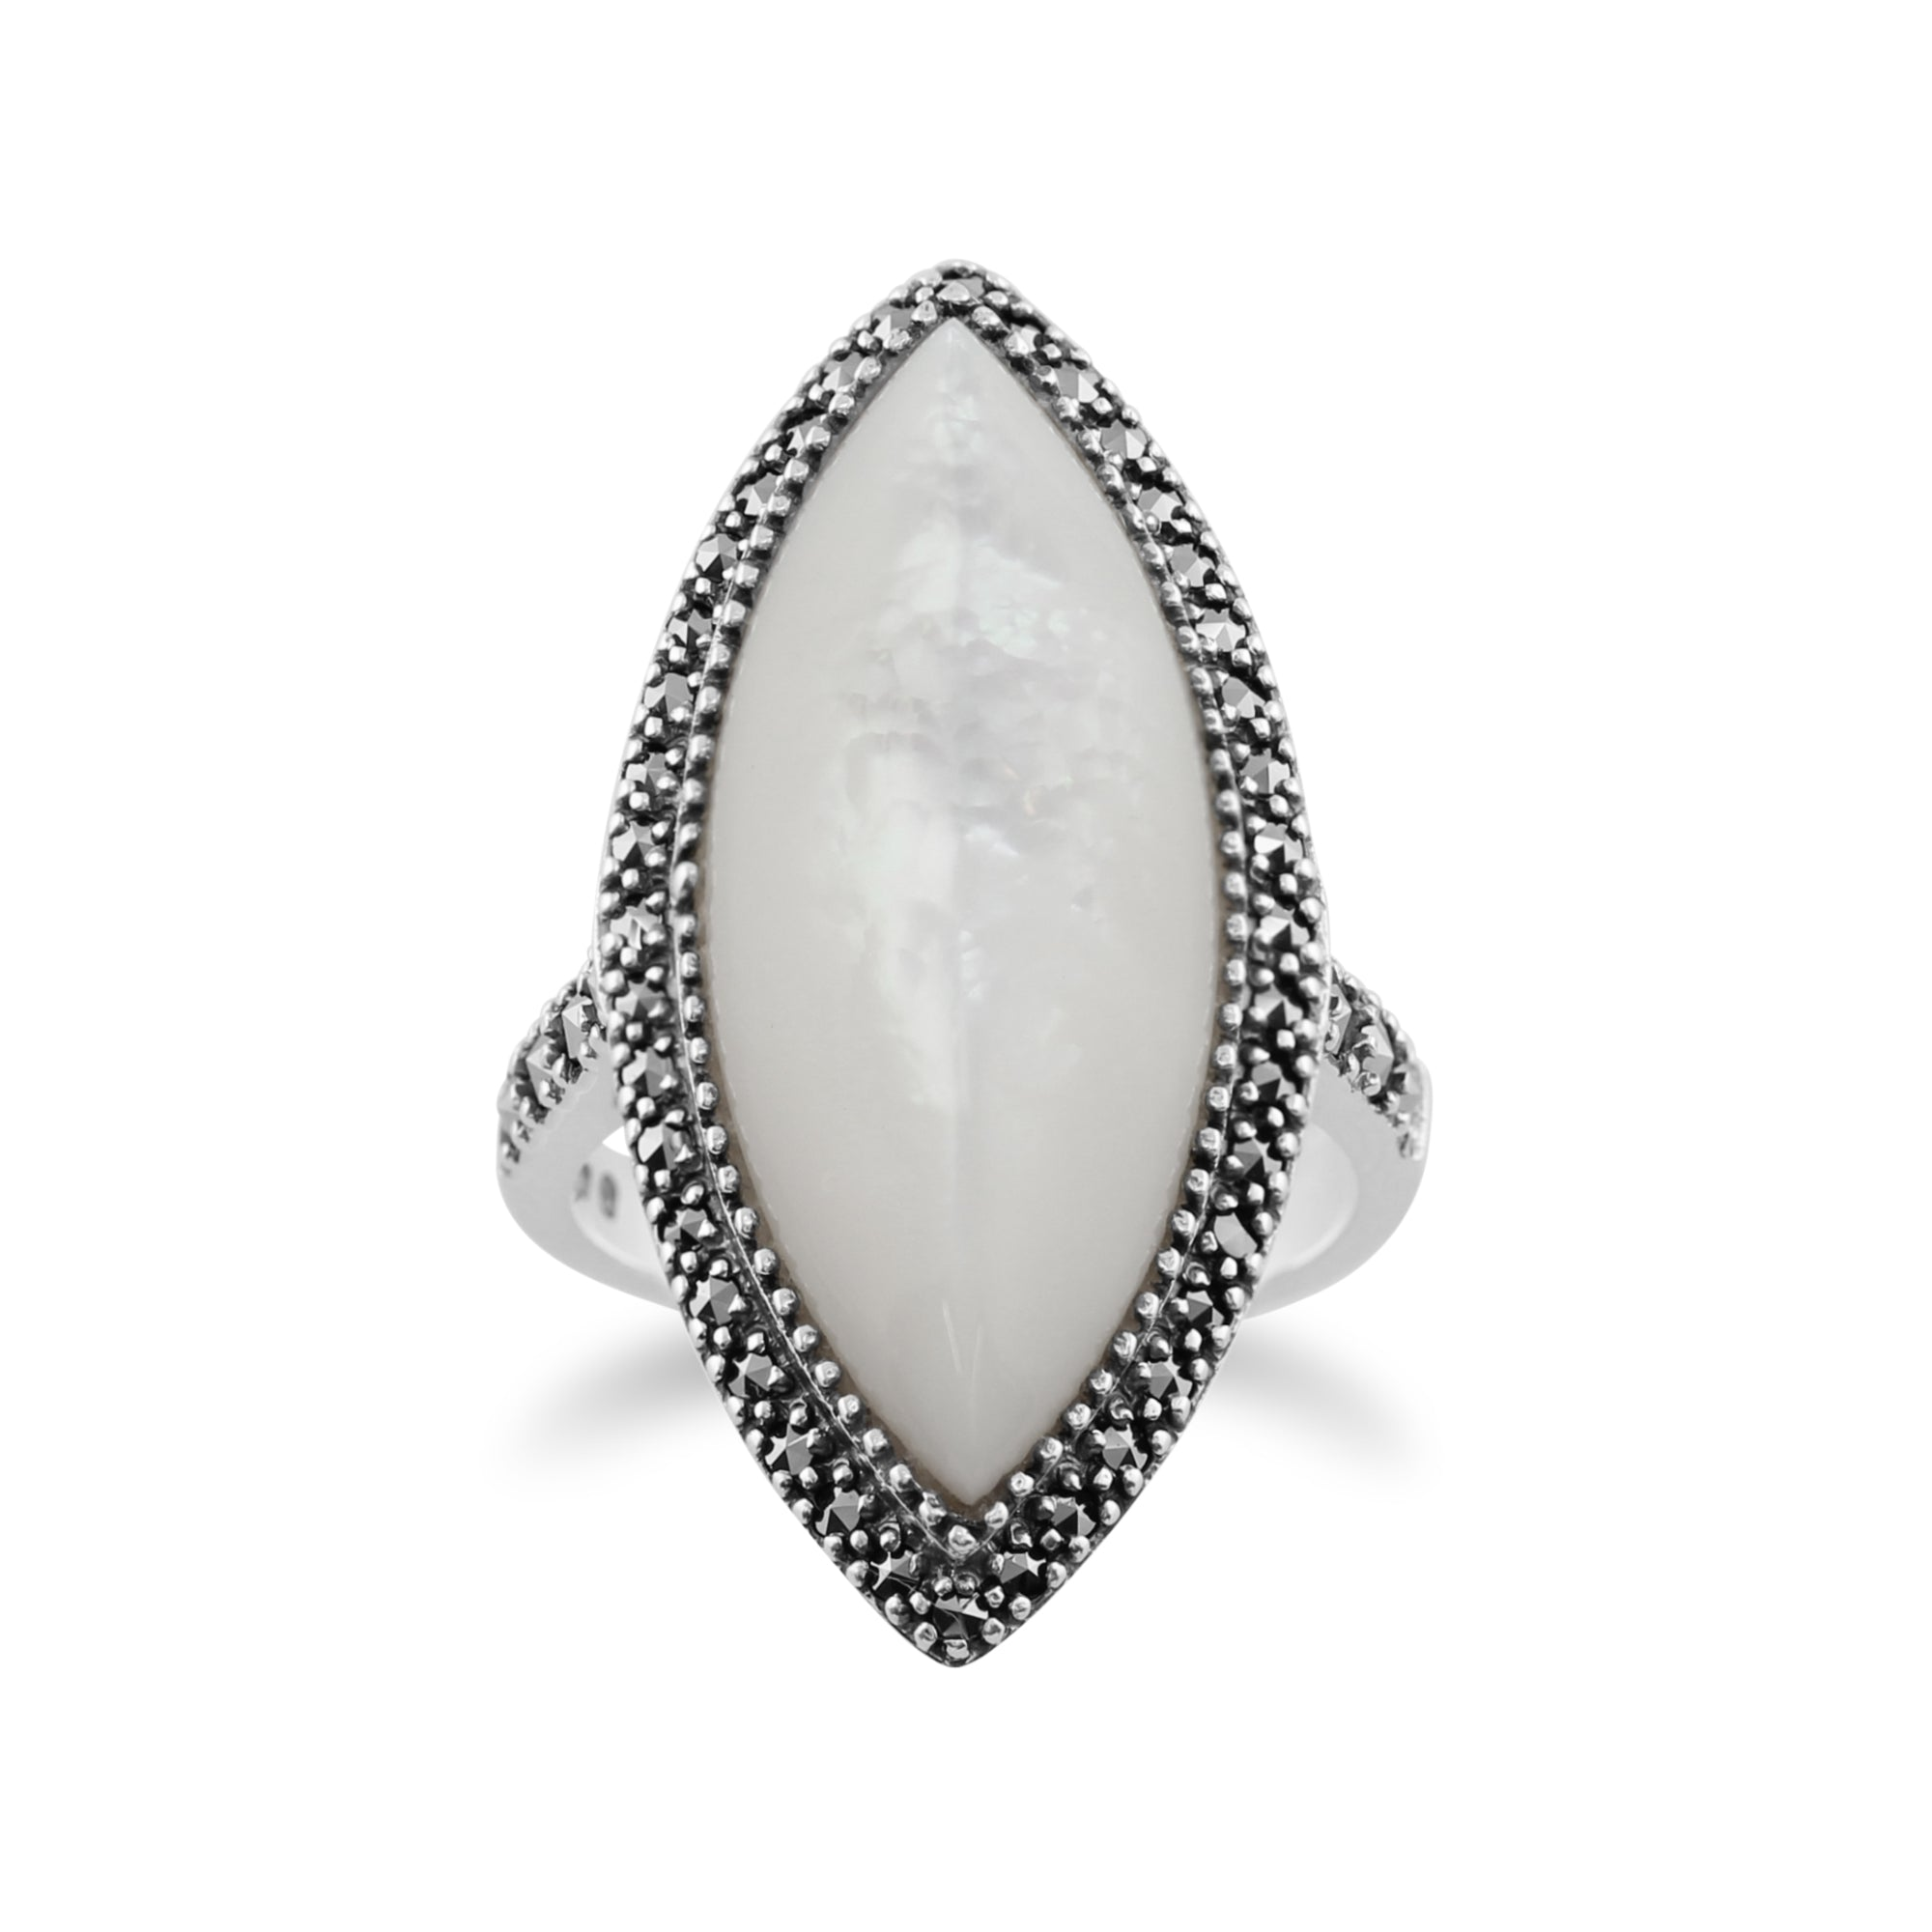 925 Sterling Silver and Mother of Pearl Ring,Natural White Gemstone Cabochon Nacre